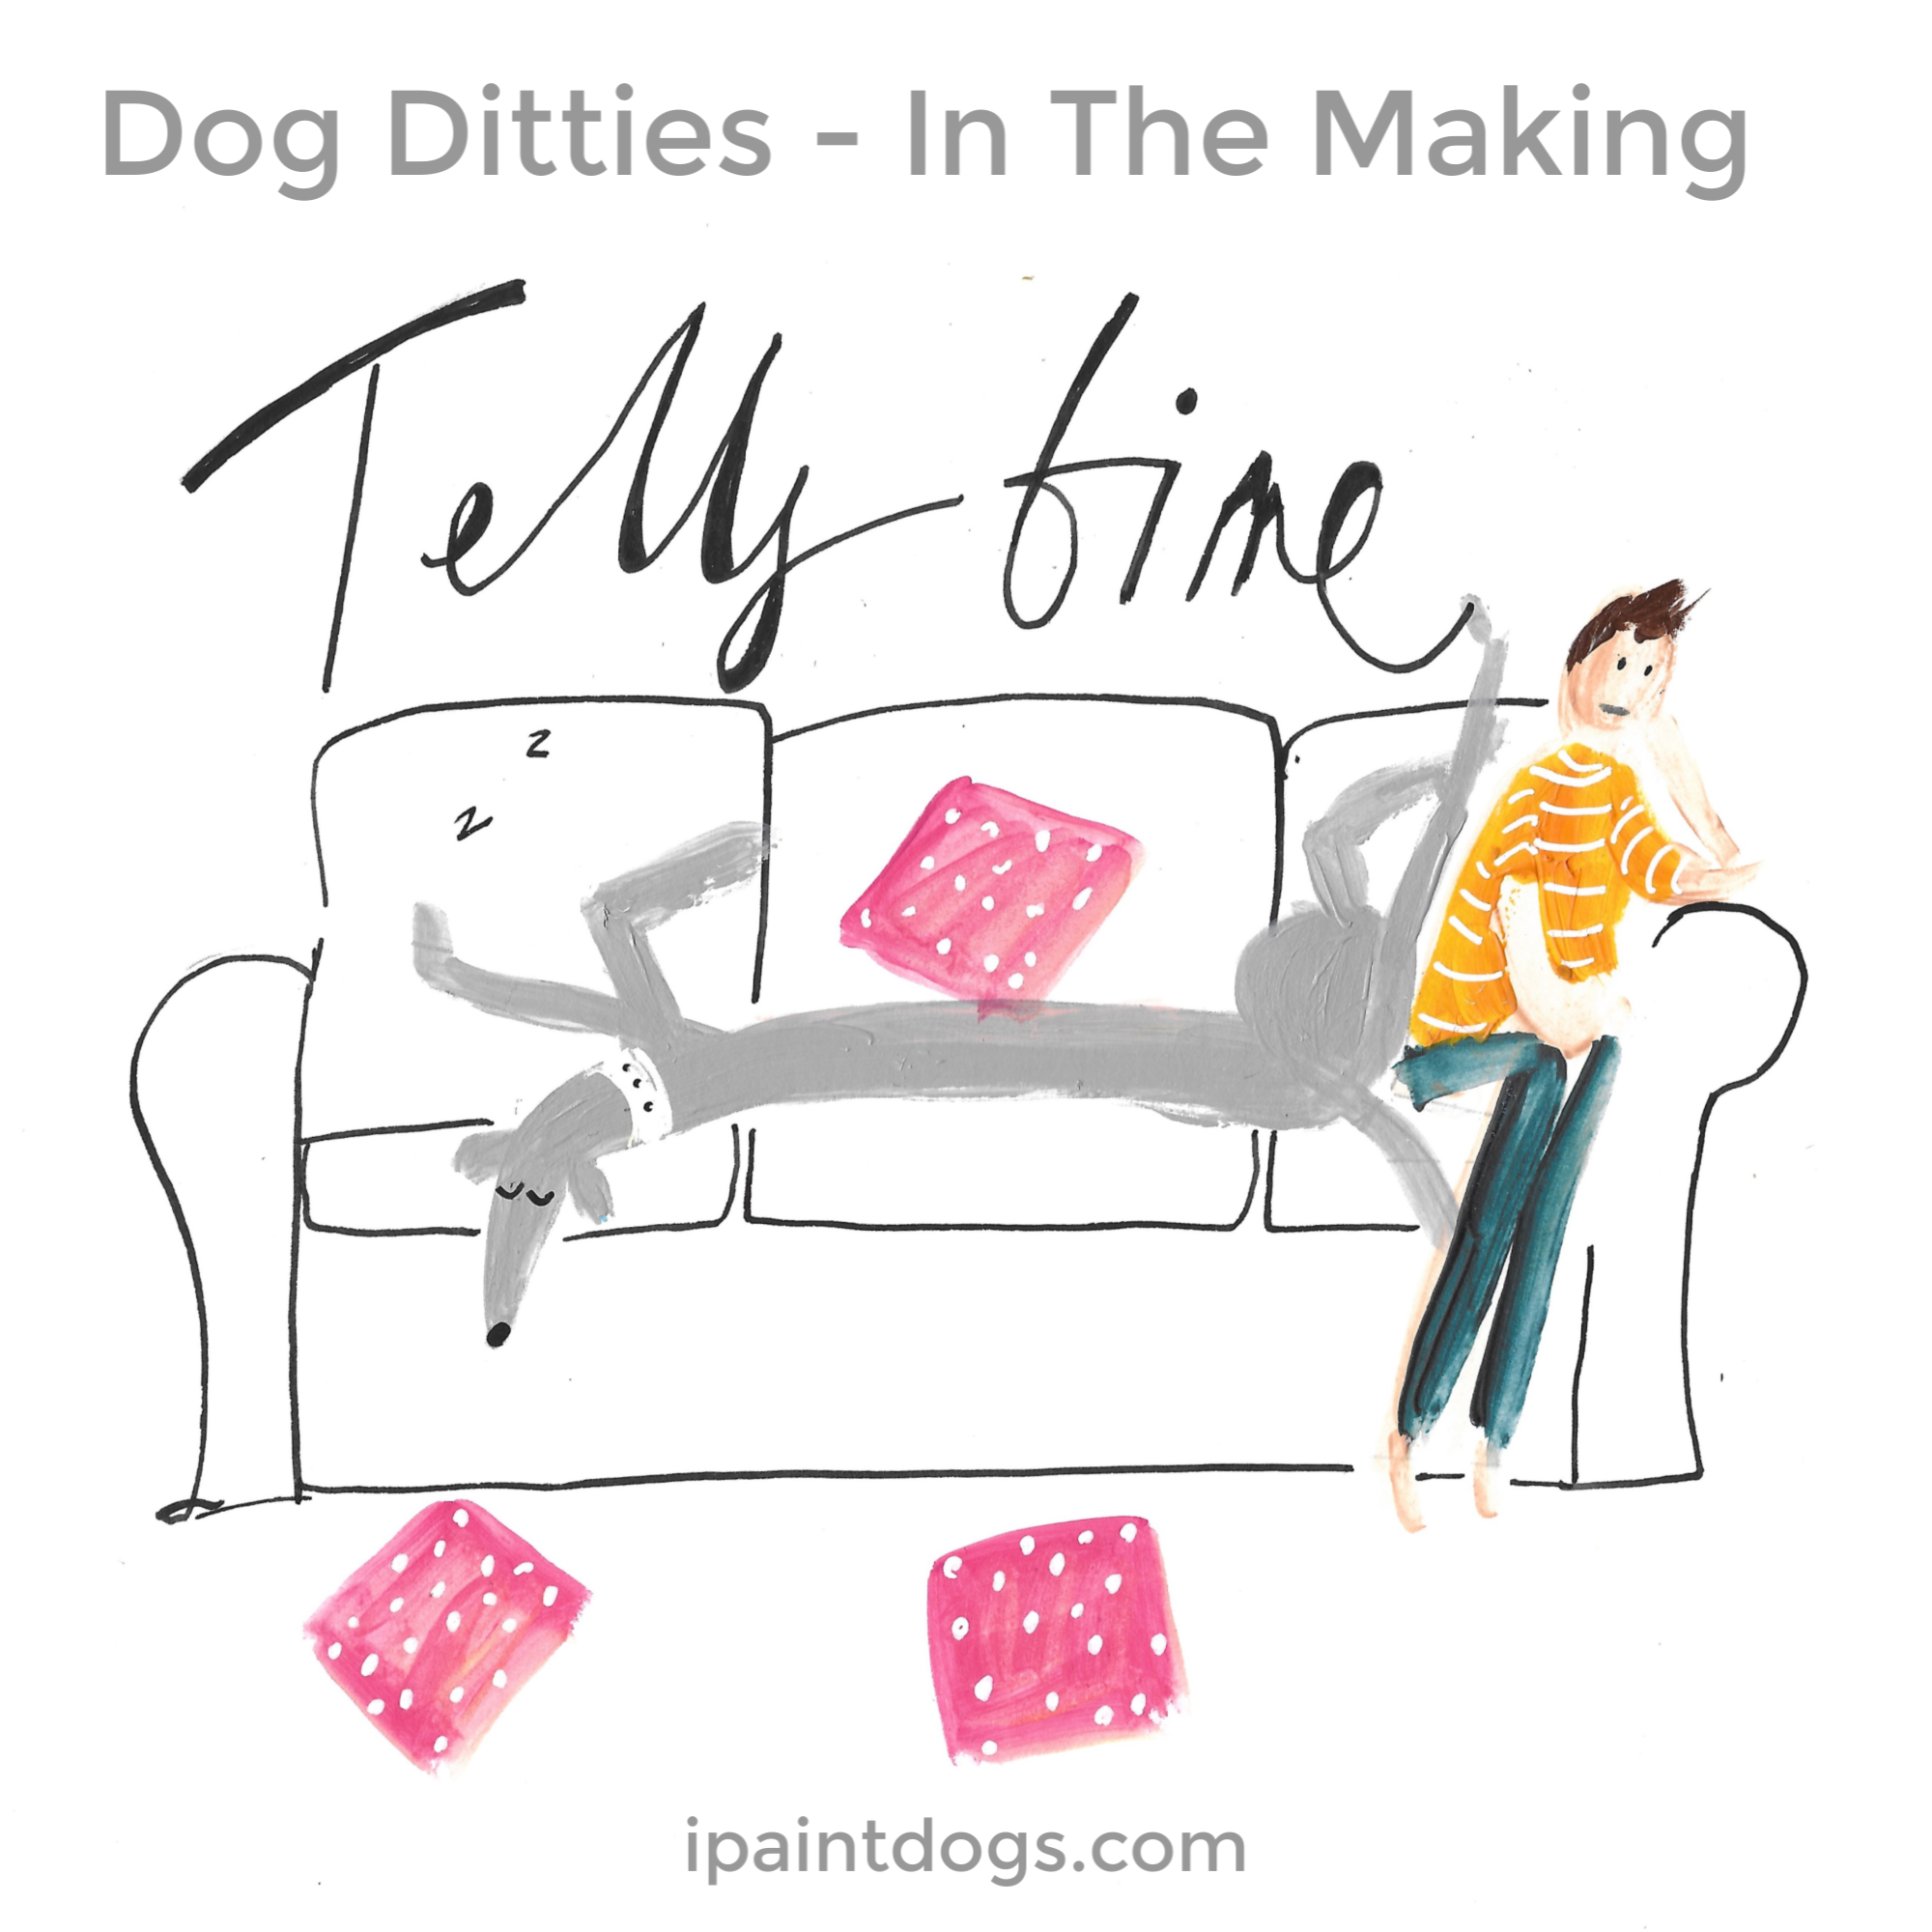 Dog Ditties, Cartoons by ipaintdogs.com